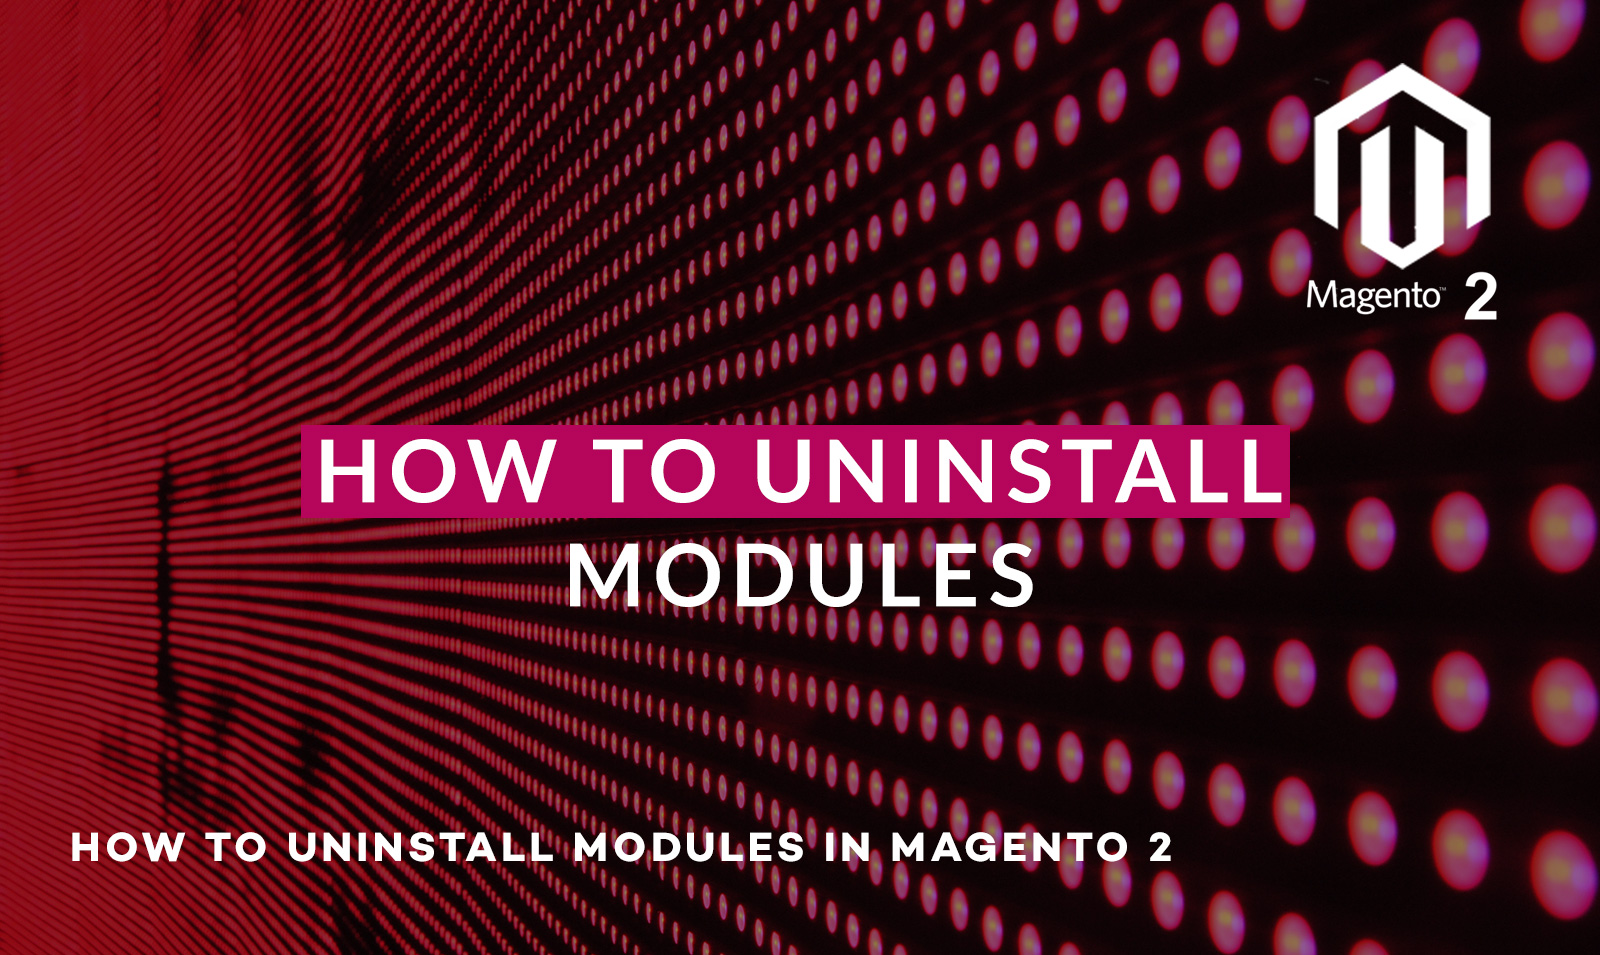 How to Uninstall modules in Magento 2 using composer or